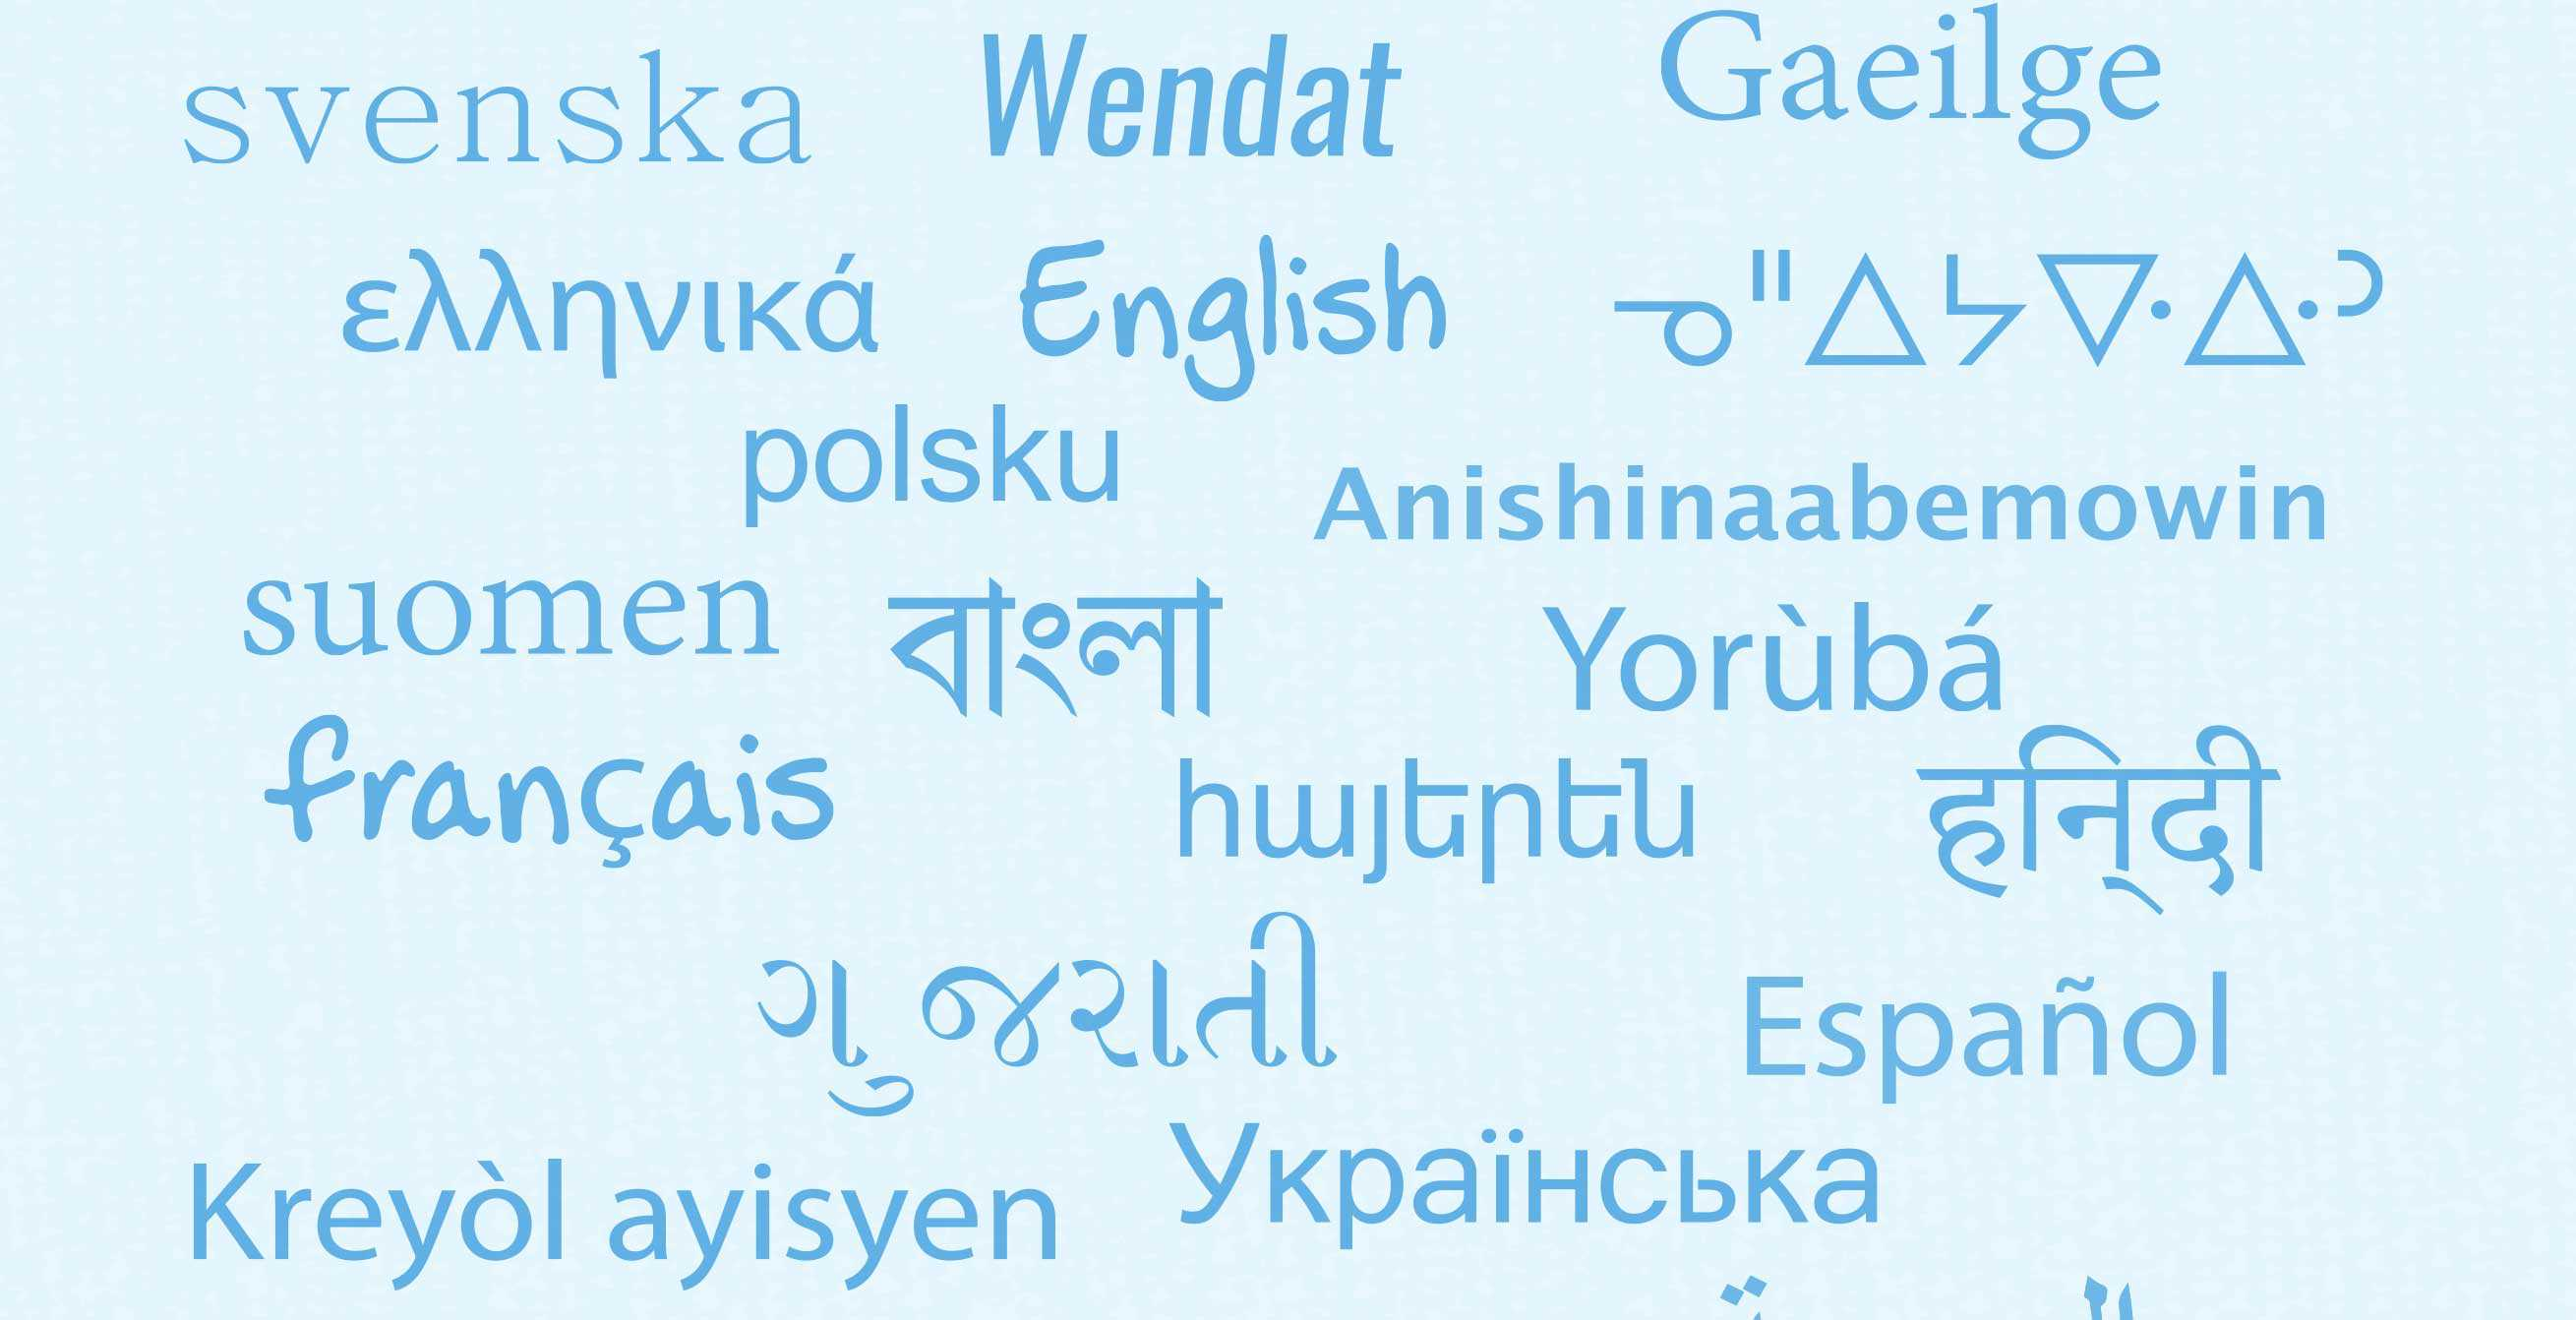 Word cloud of different languages